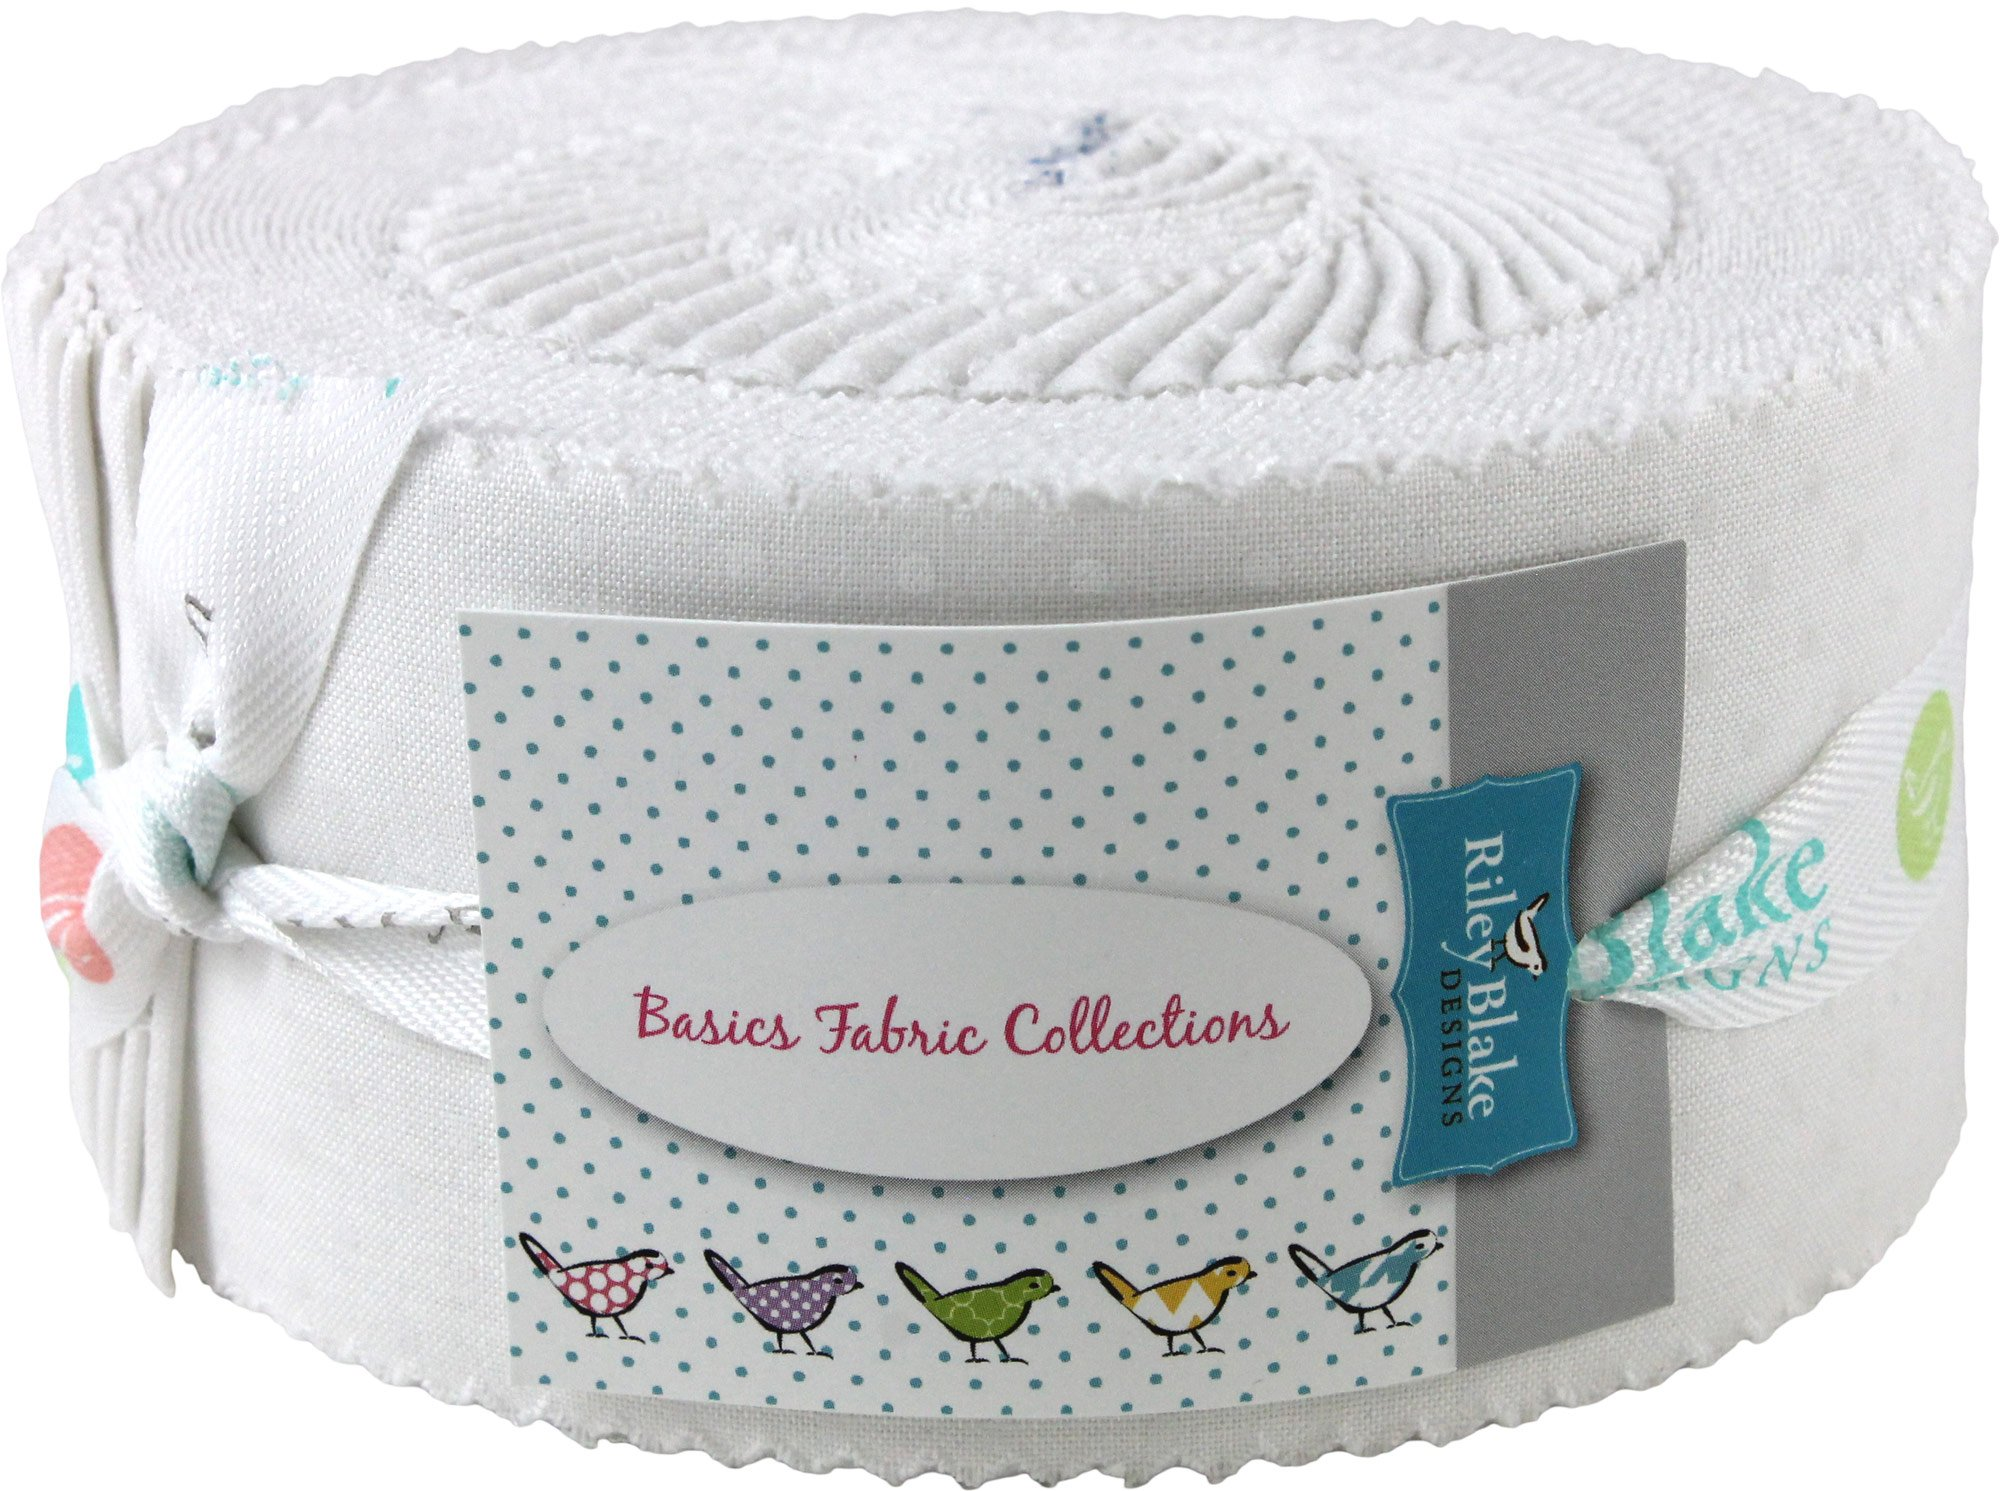 Swiss Dots White on White Rolie Polie 40 2.5-inch Strips Jelly Roll Riley Blake RP-790-150-40 by Riley Blake Designs